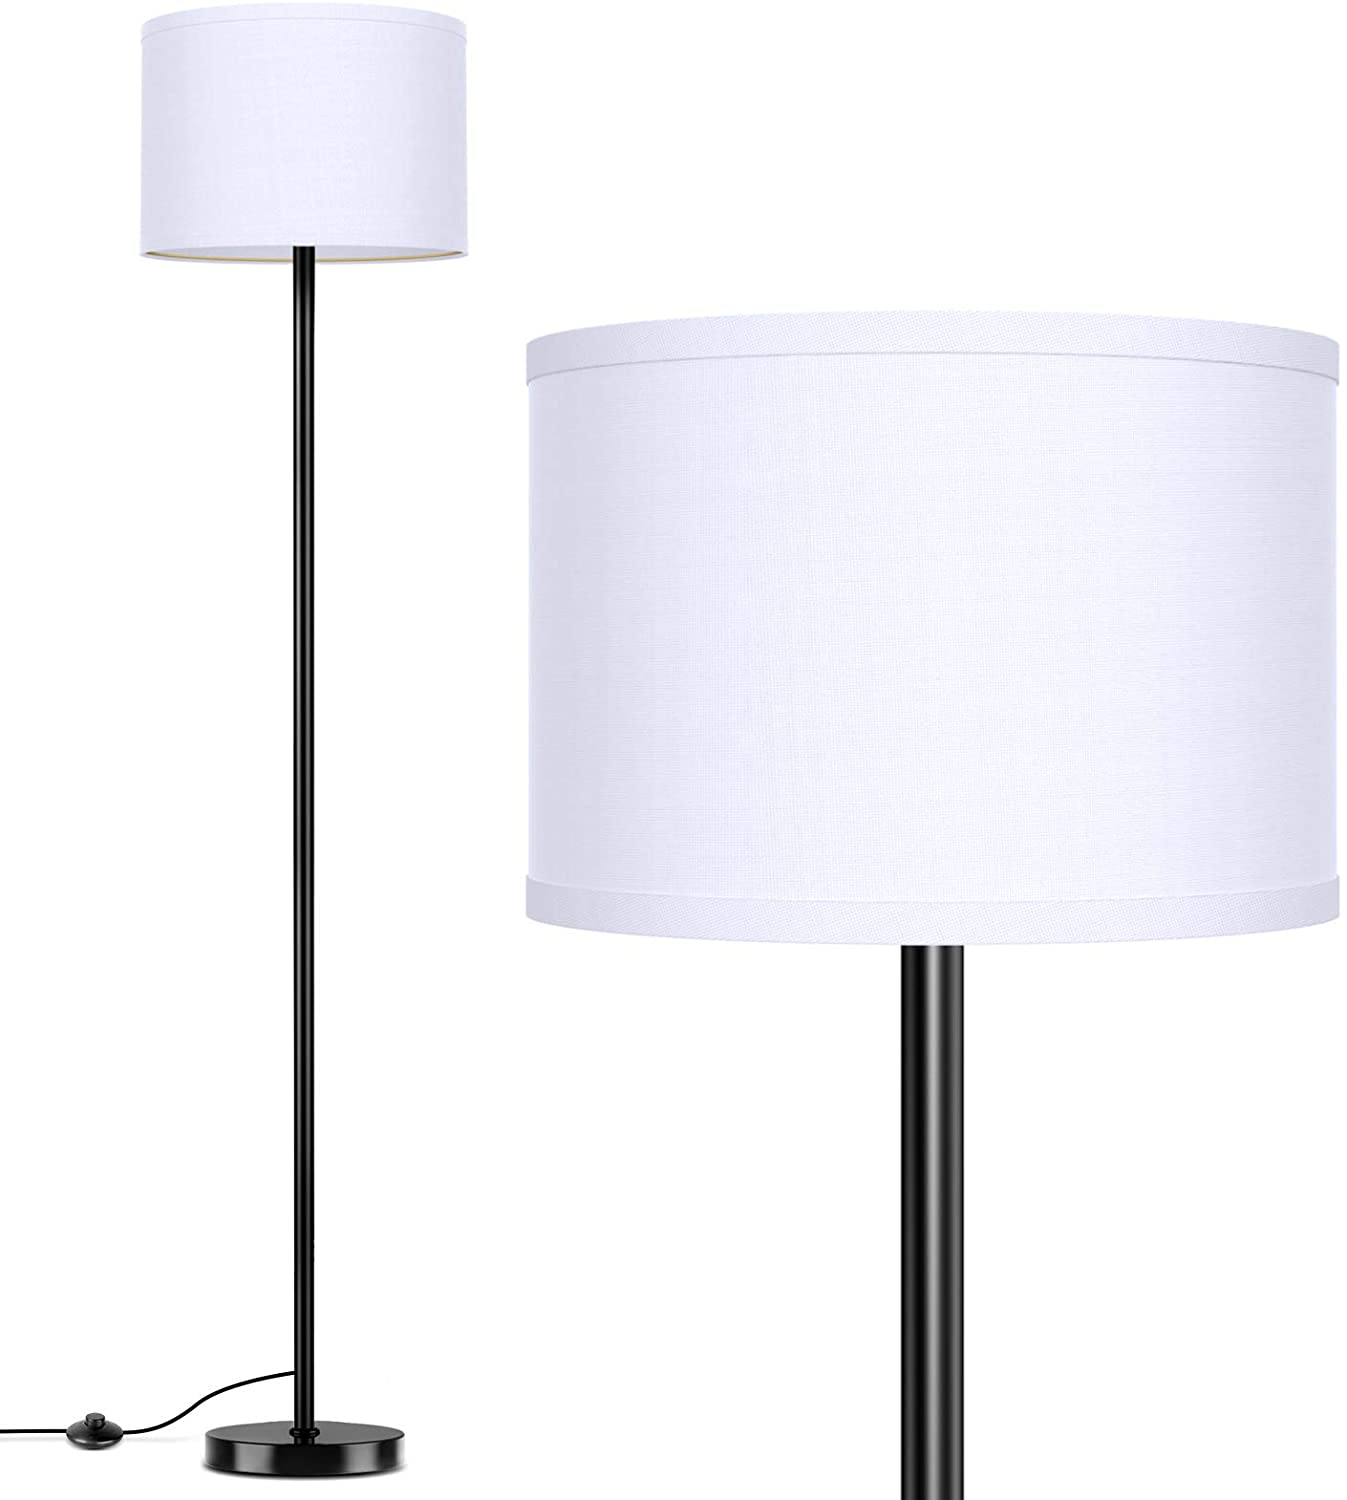 Direct stock discount LED Floor Lamp Simple Design Super beauty product restock quality top! with Standing Modern Ta Shade